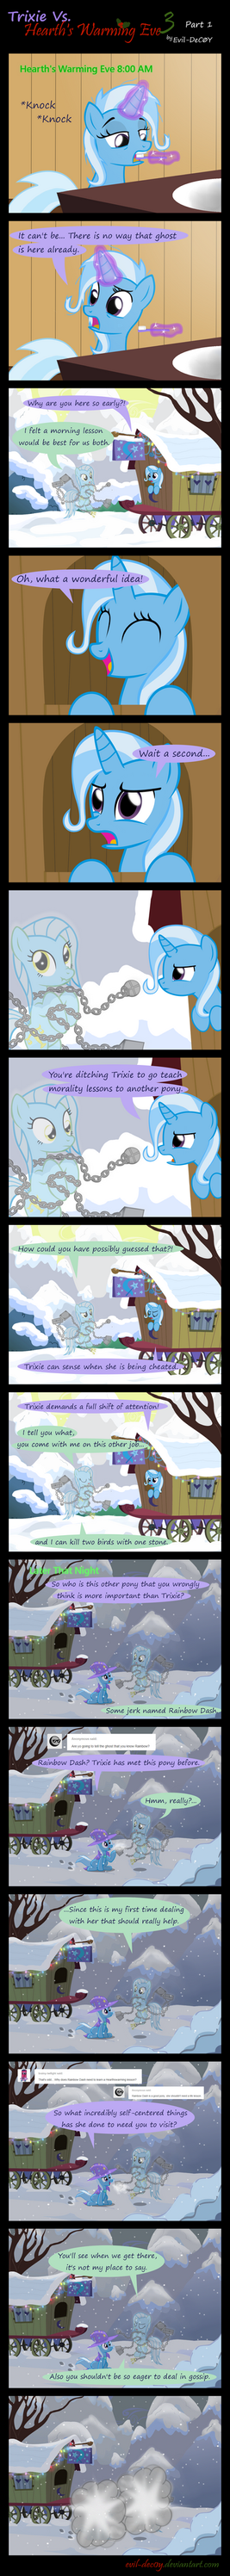 Trixie Vs. Hearth's Warming eve 3 (part 1) by Evil-DeC0Y